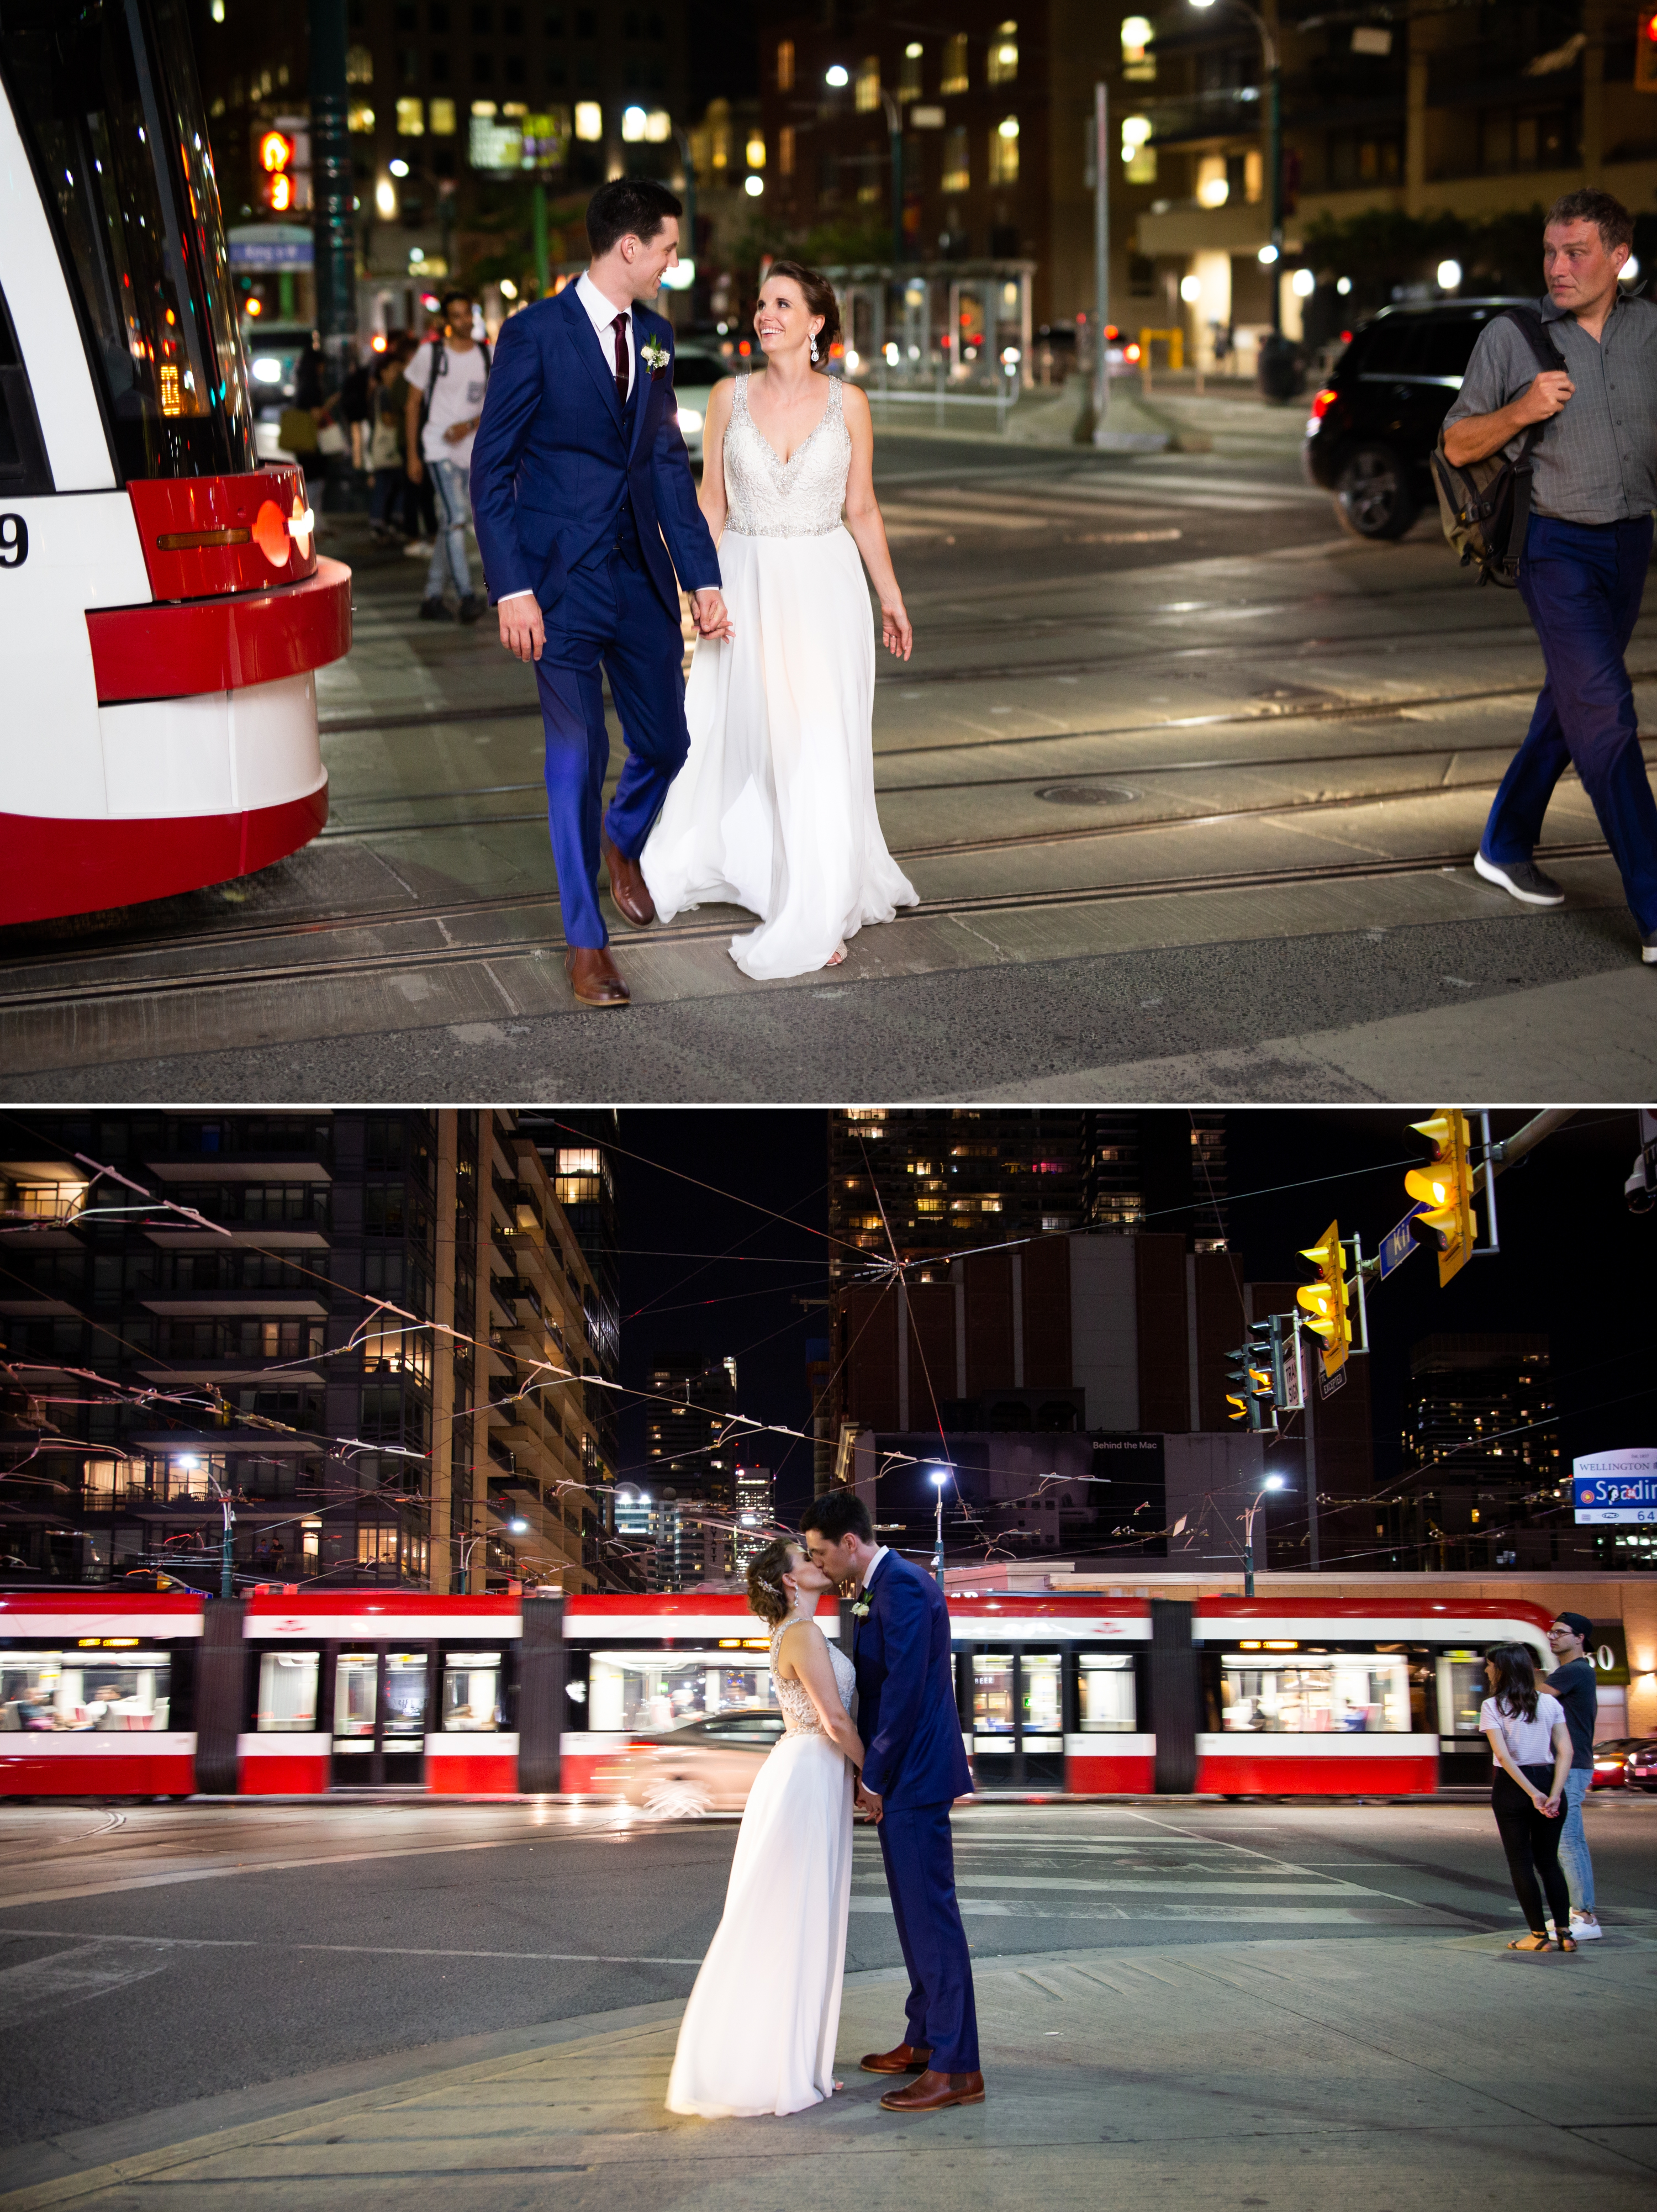 Street Car Toronto Wedding 2nd Floor Events Zsuzsi Pal Photography